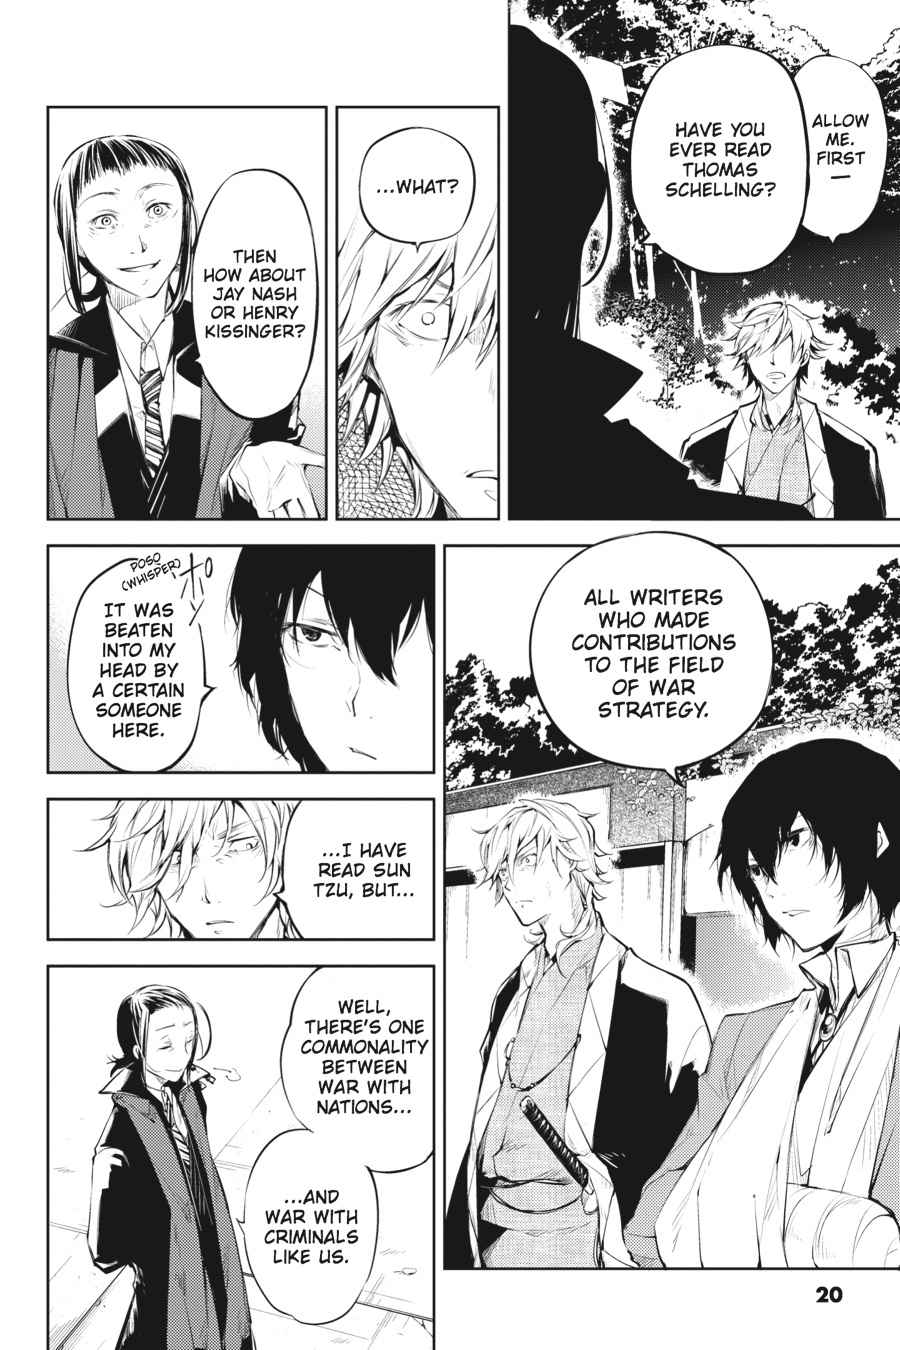 Bungou Stray Dogs Chapter 30 Page 20